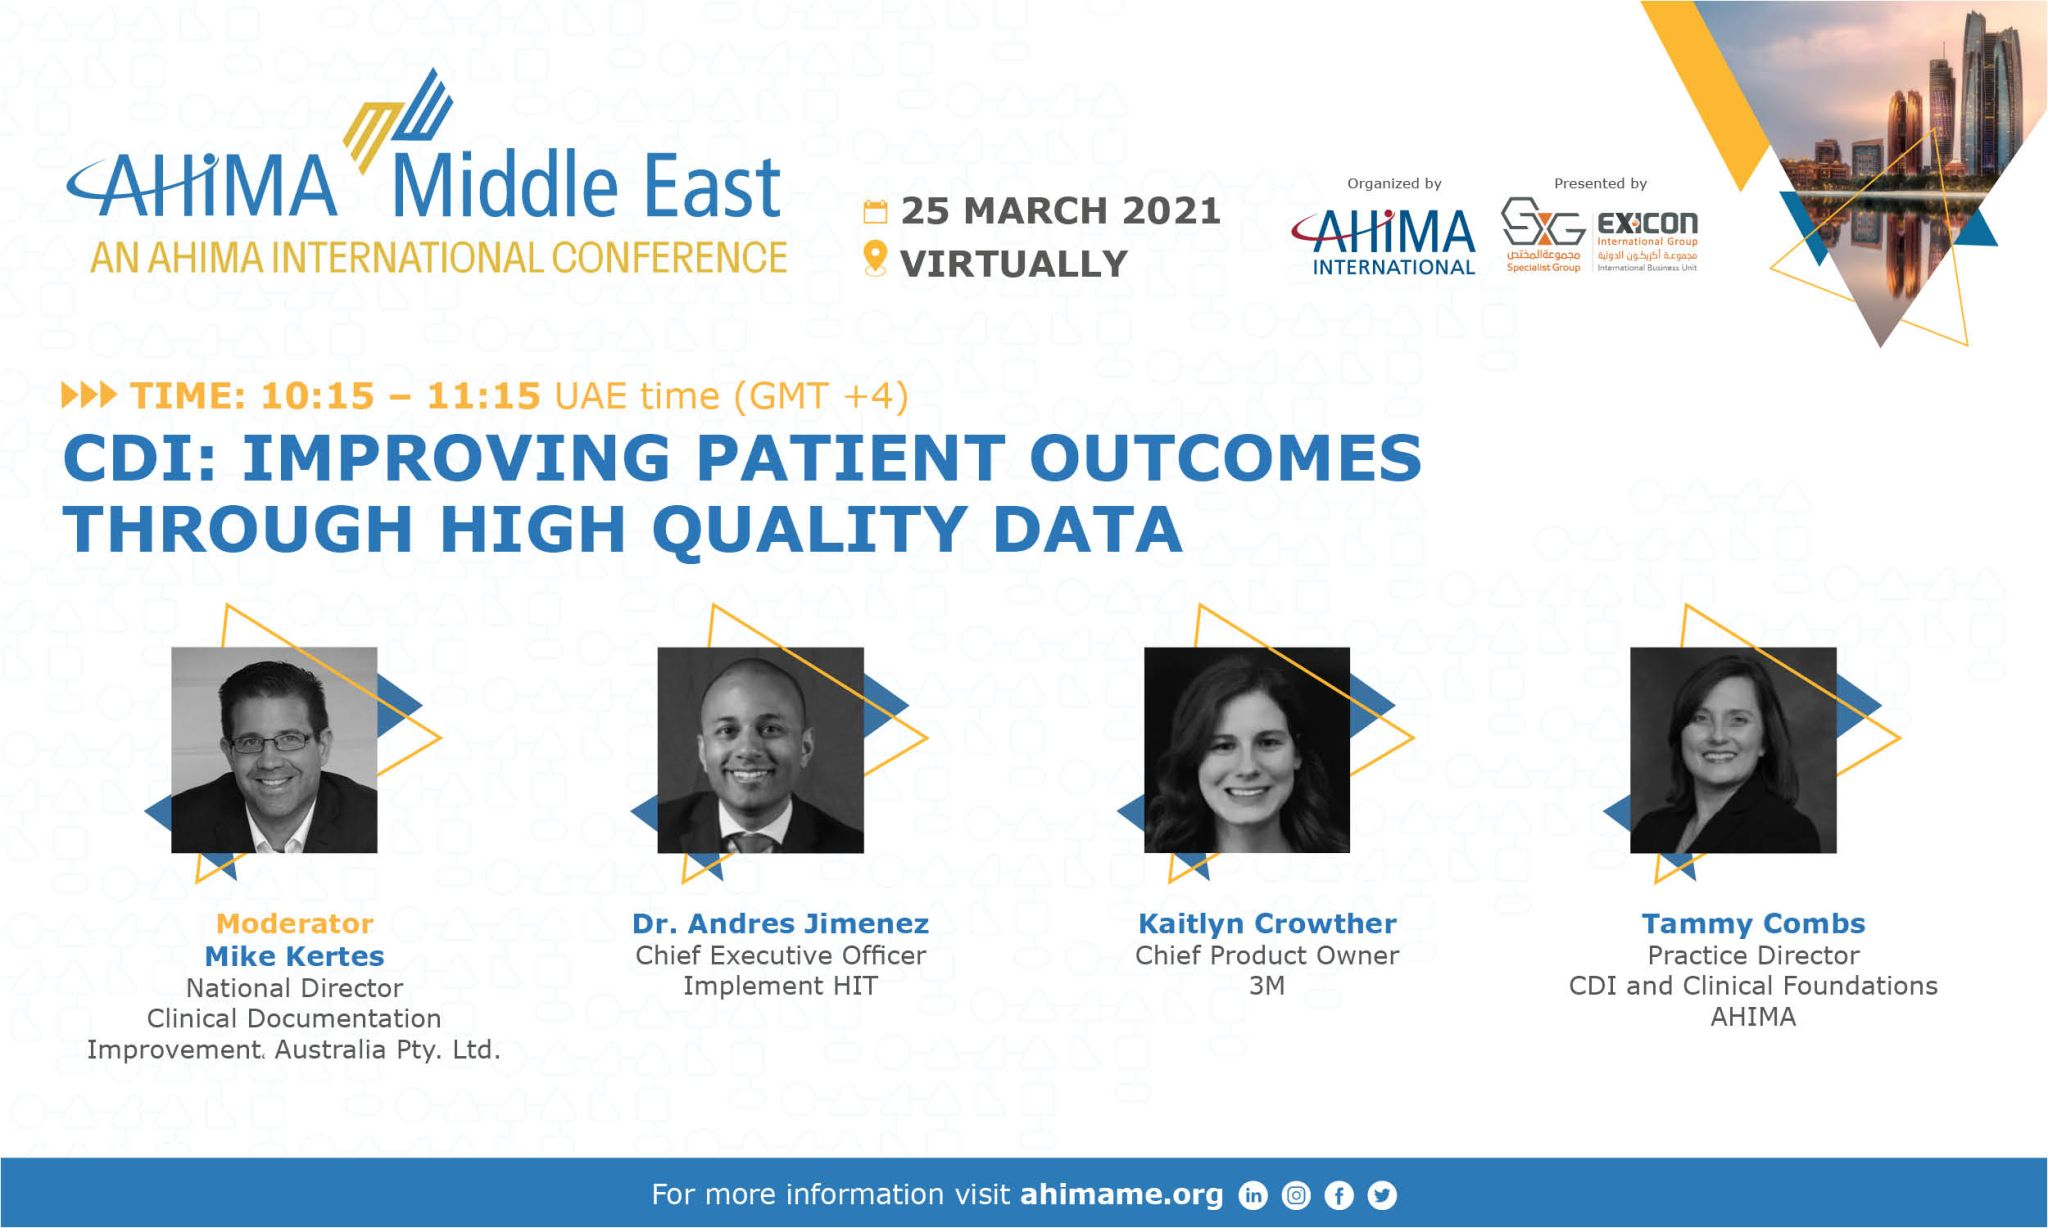 CDI: Improving patient outcomes through high quality data